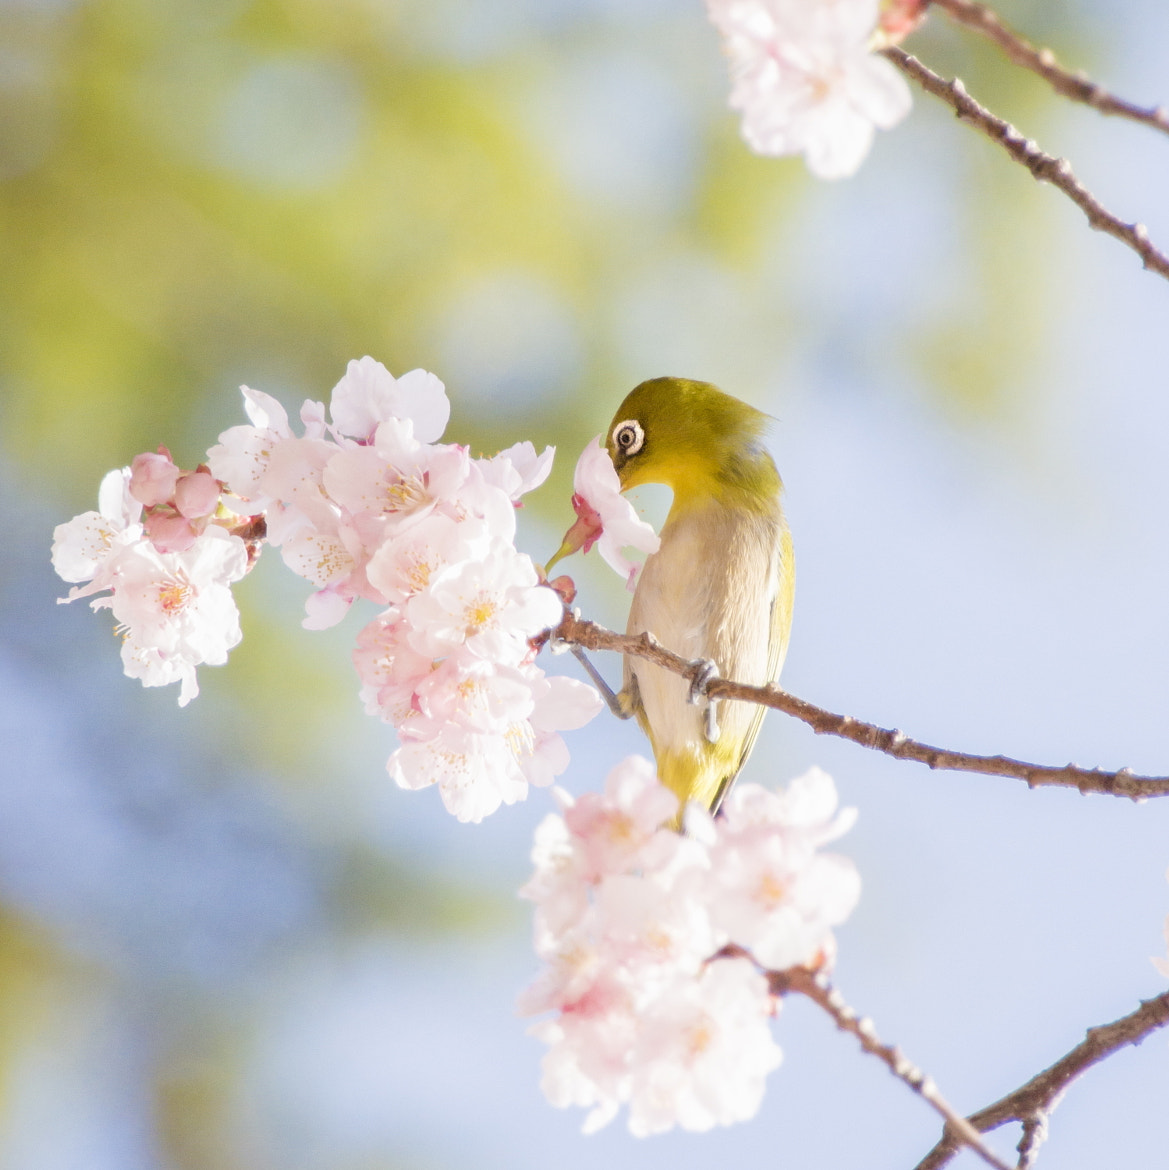 Photograph The biginning of spring by Takeshi Marumoto on 500px